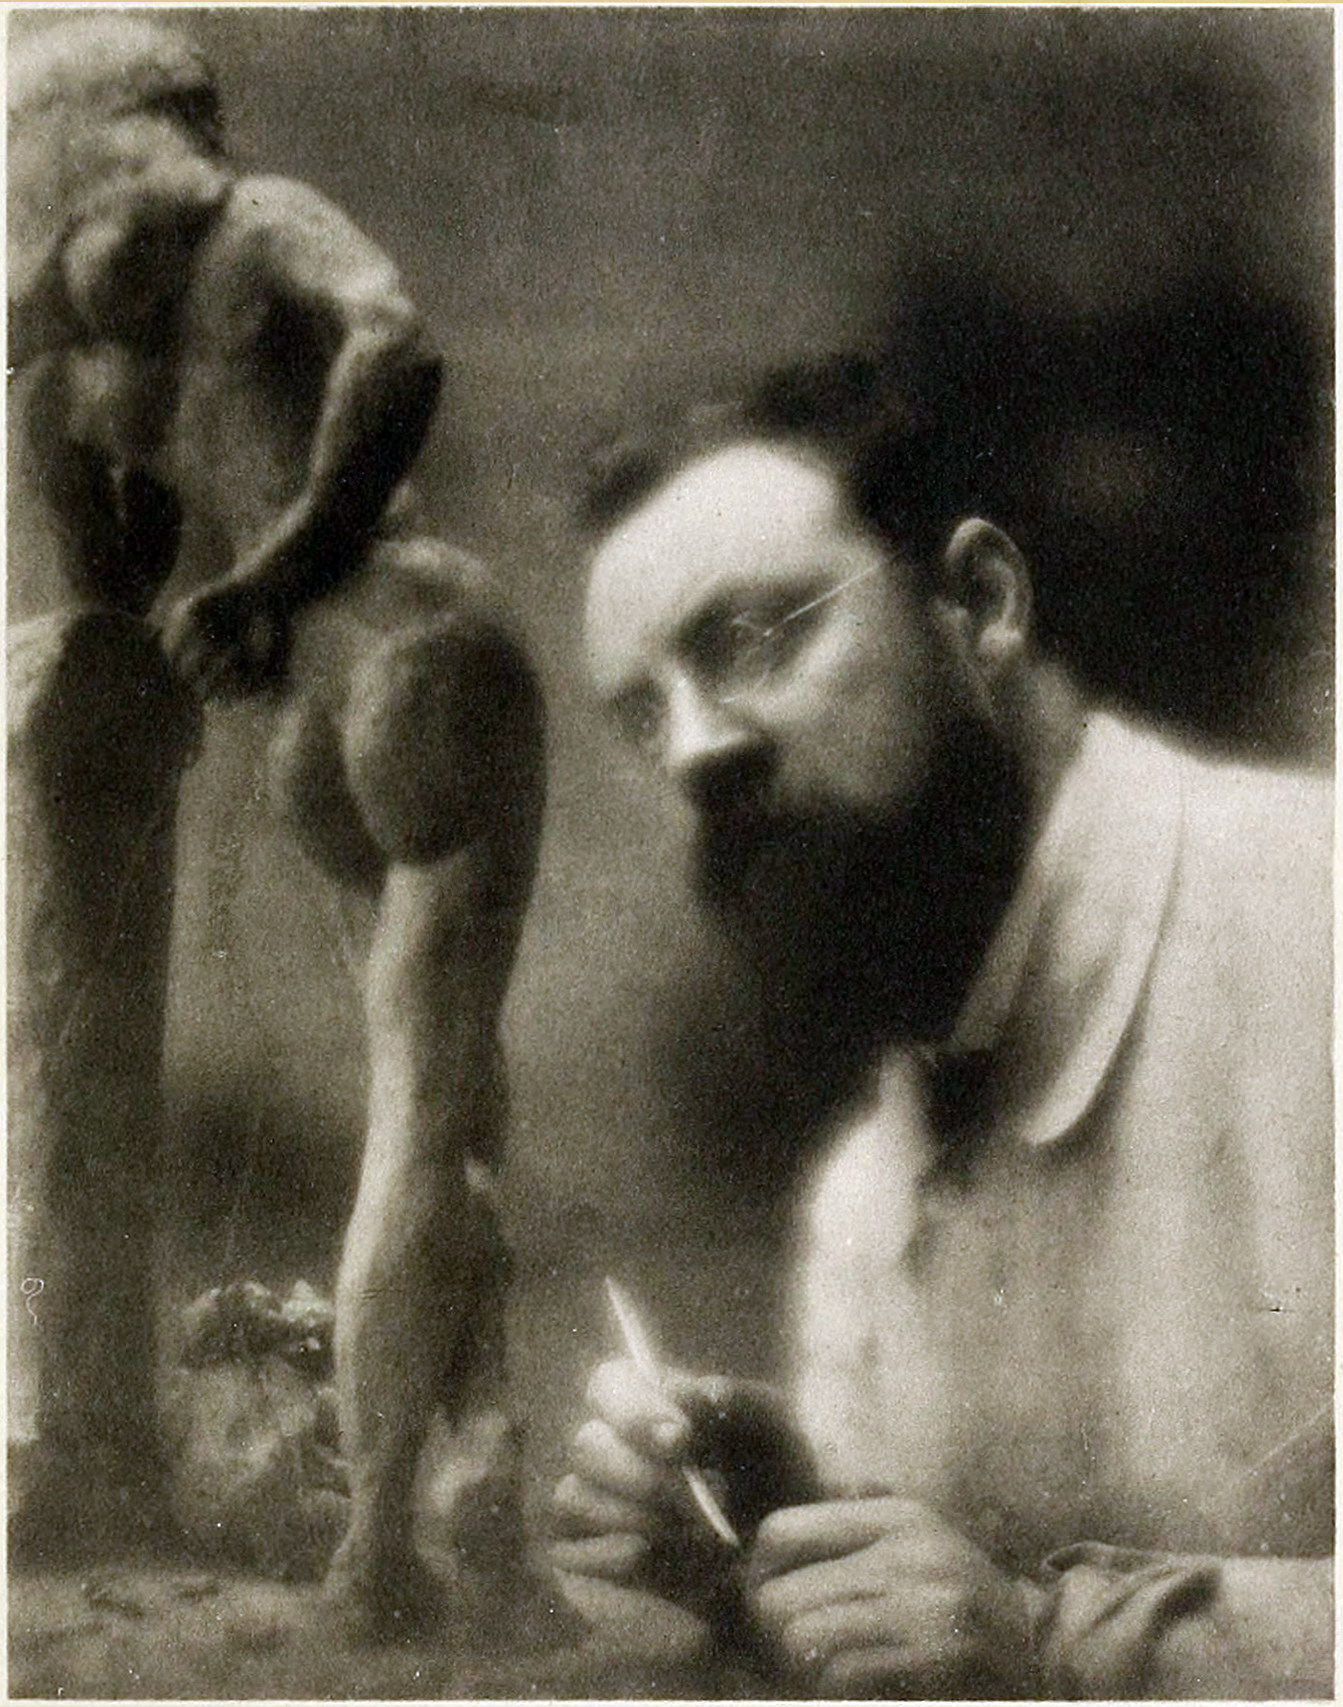 Portrait of Edward Steichen